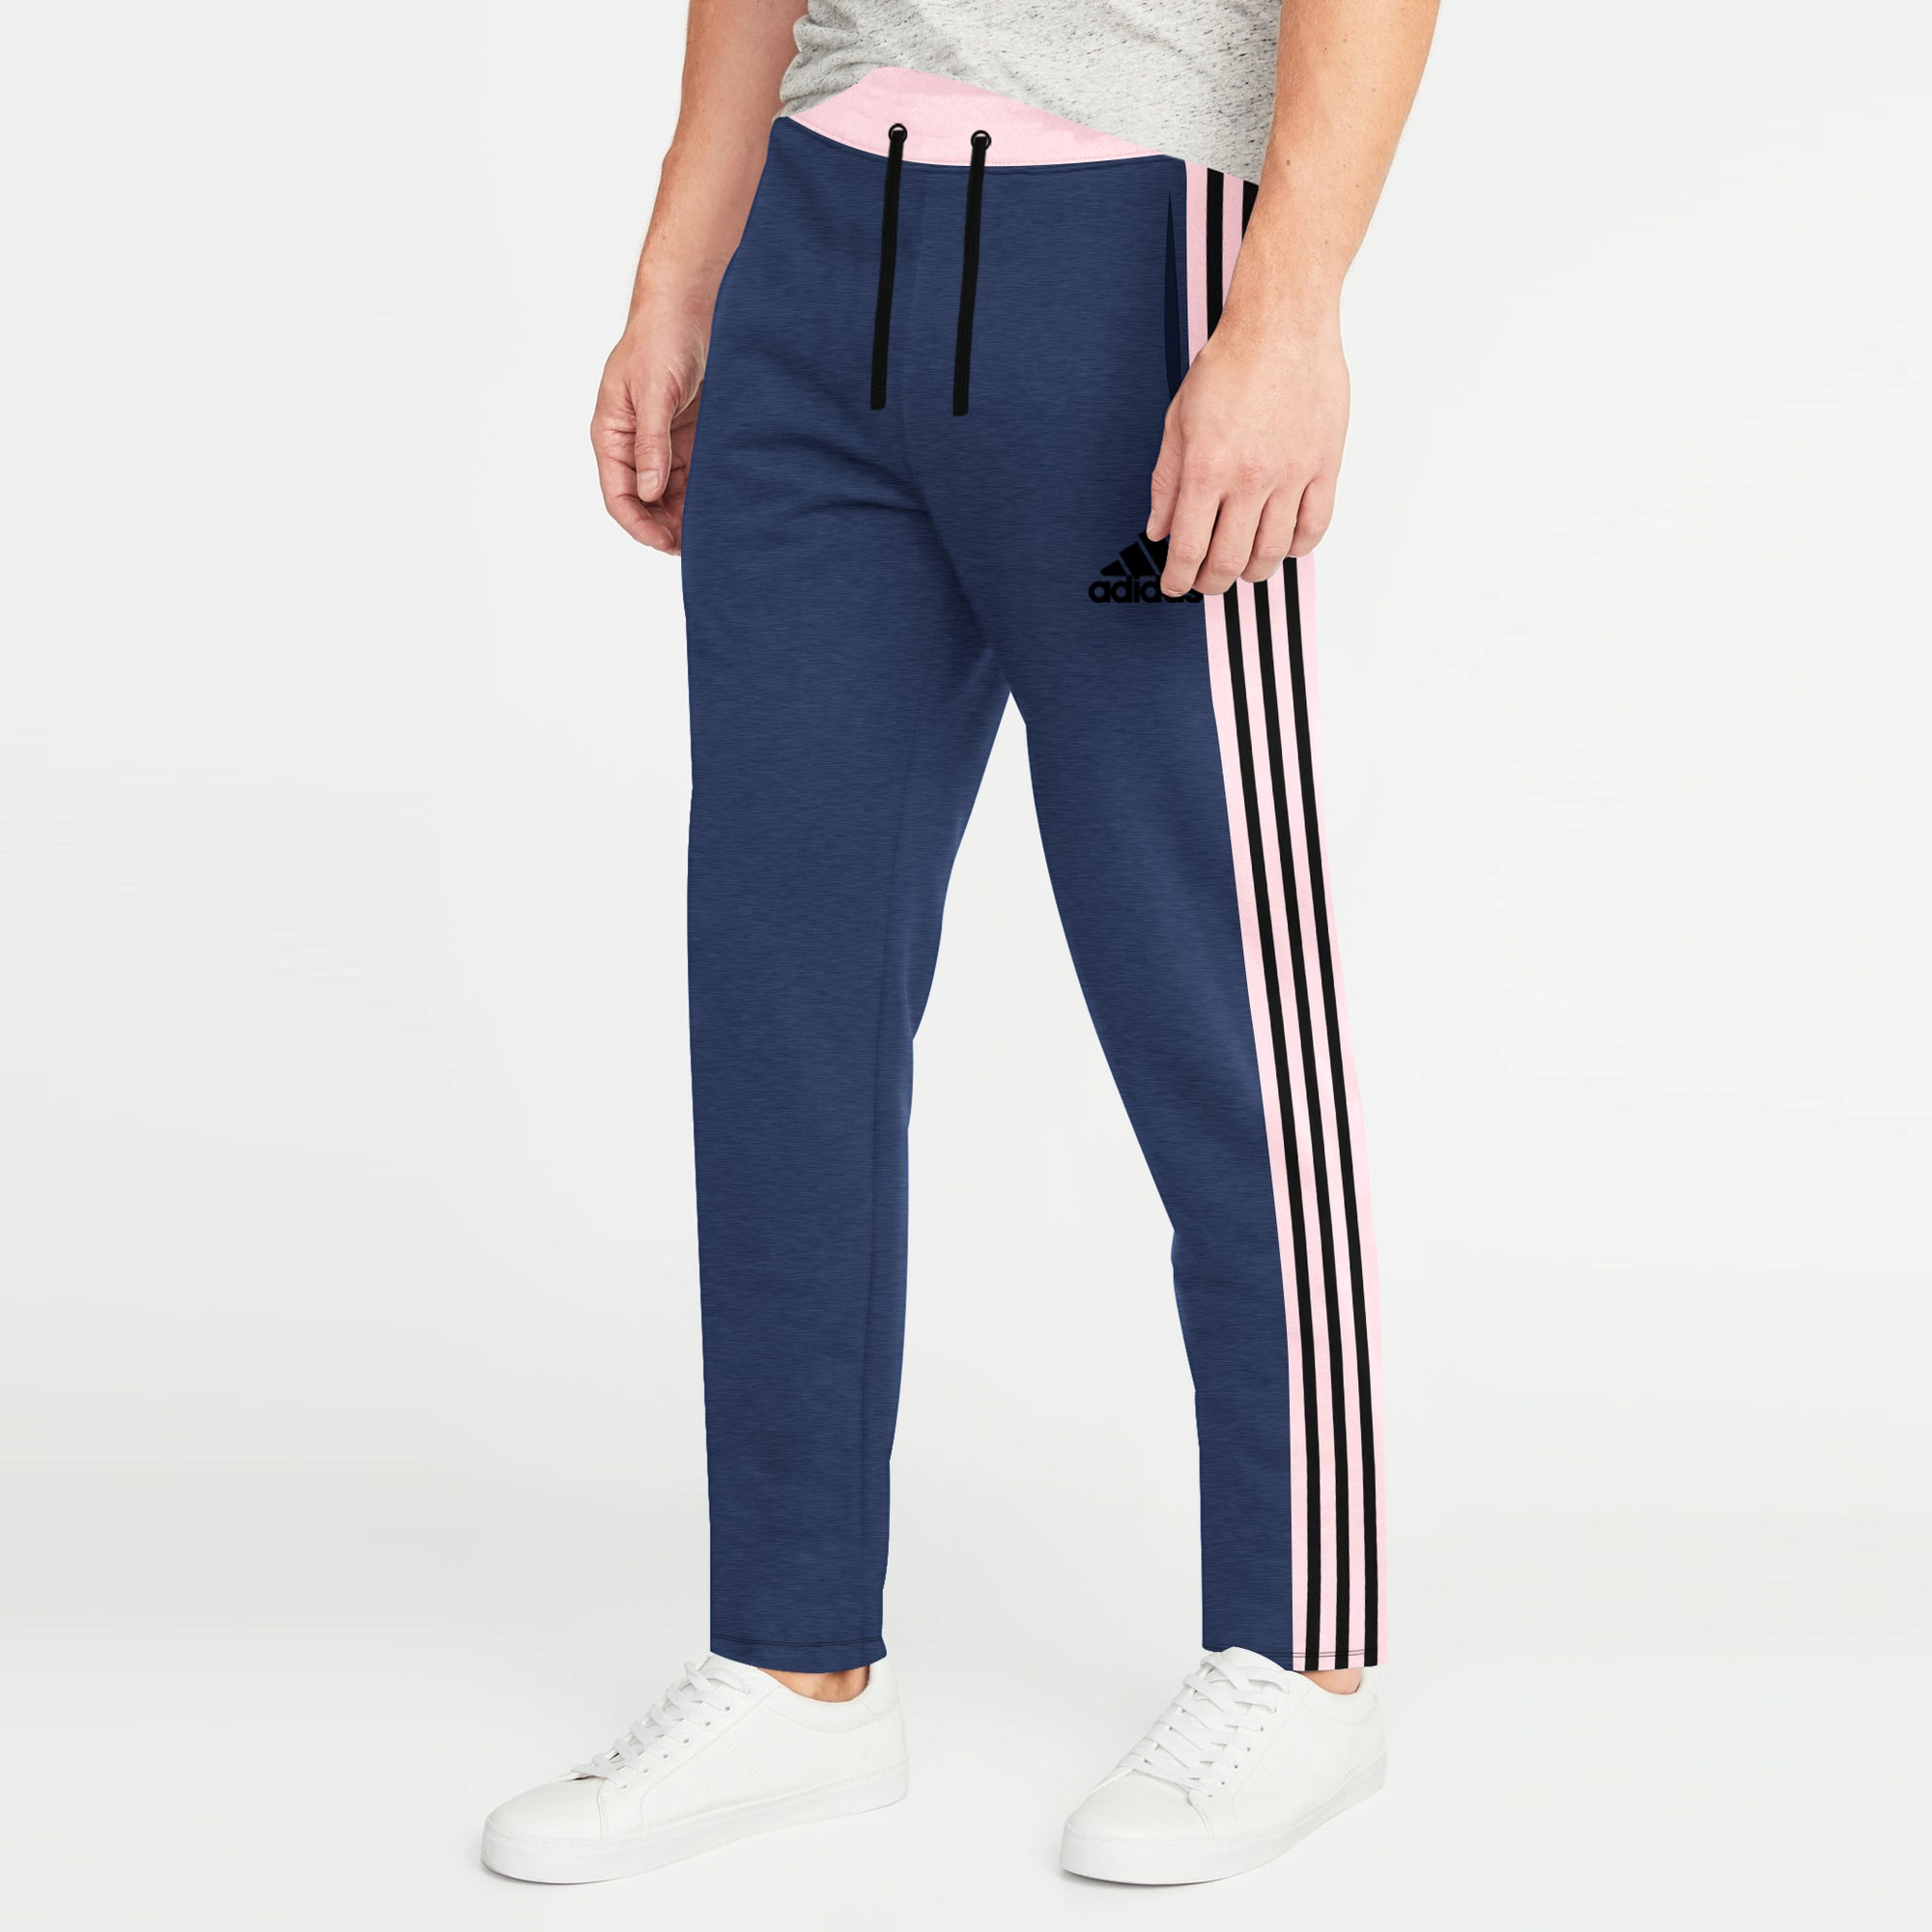 brandsego - Adidas Single Jersey Regular Fit Trouser For Men-Navy Melange with Light Pink & Black Stripe-BE8781